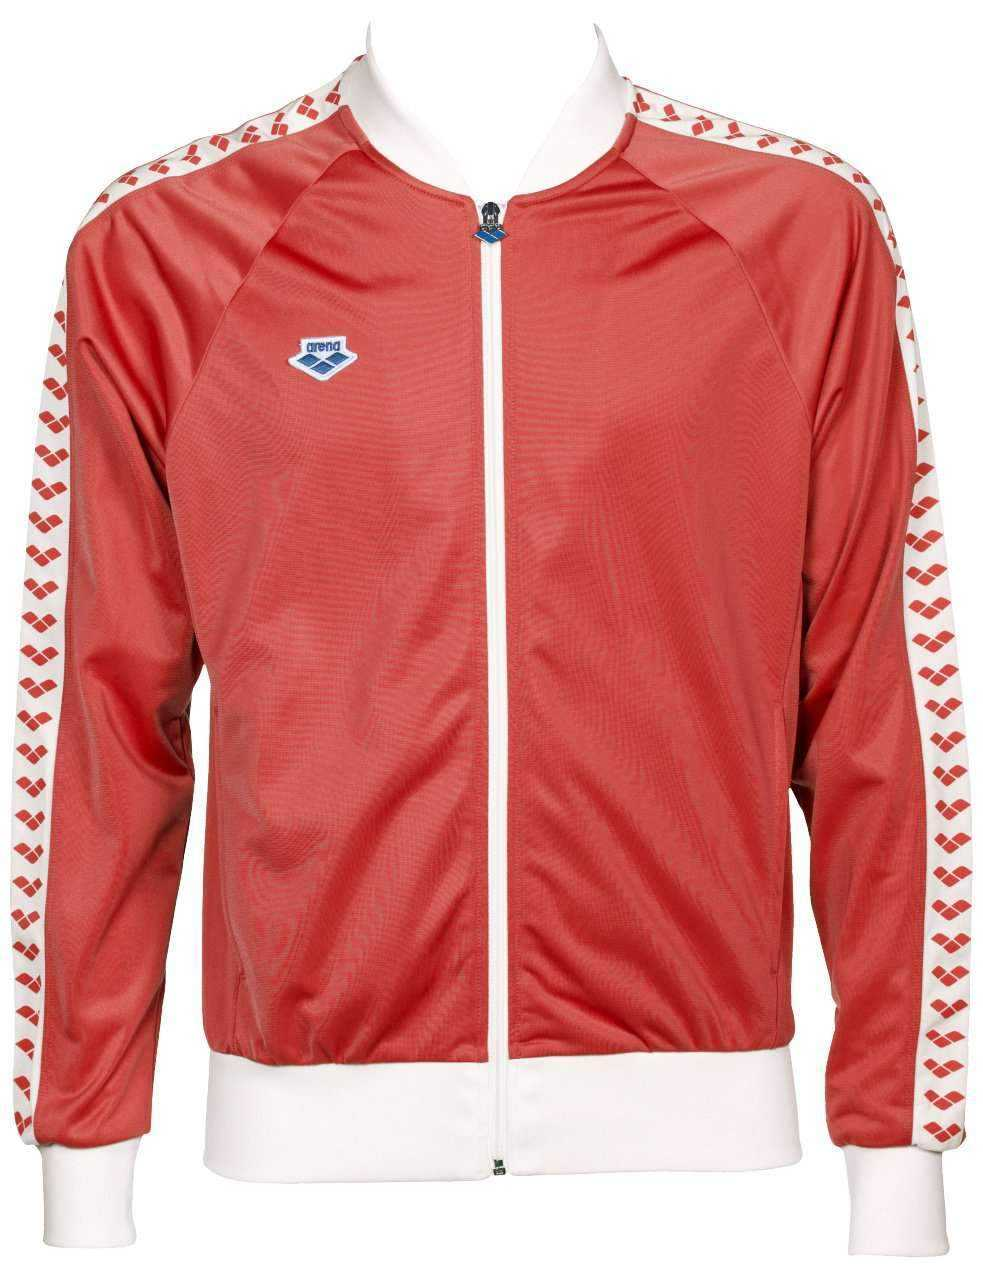 Heren Relax Iv Team Jacket red-white-red | Zwemmershop